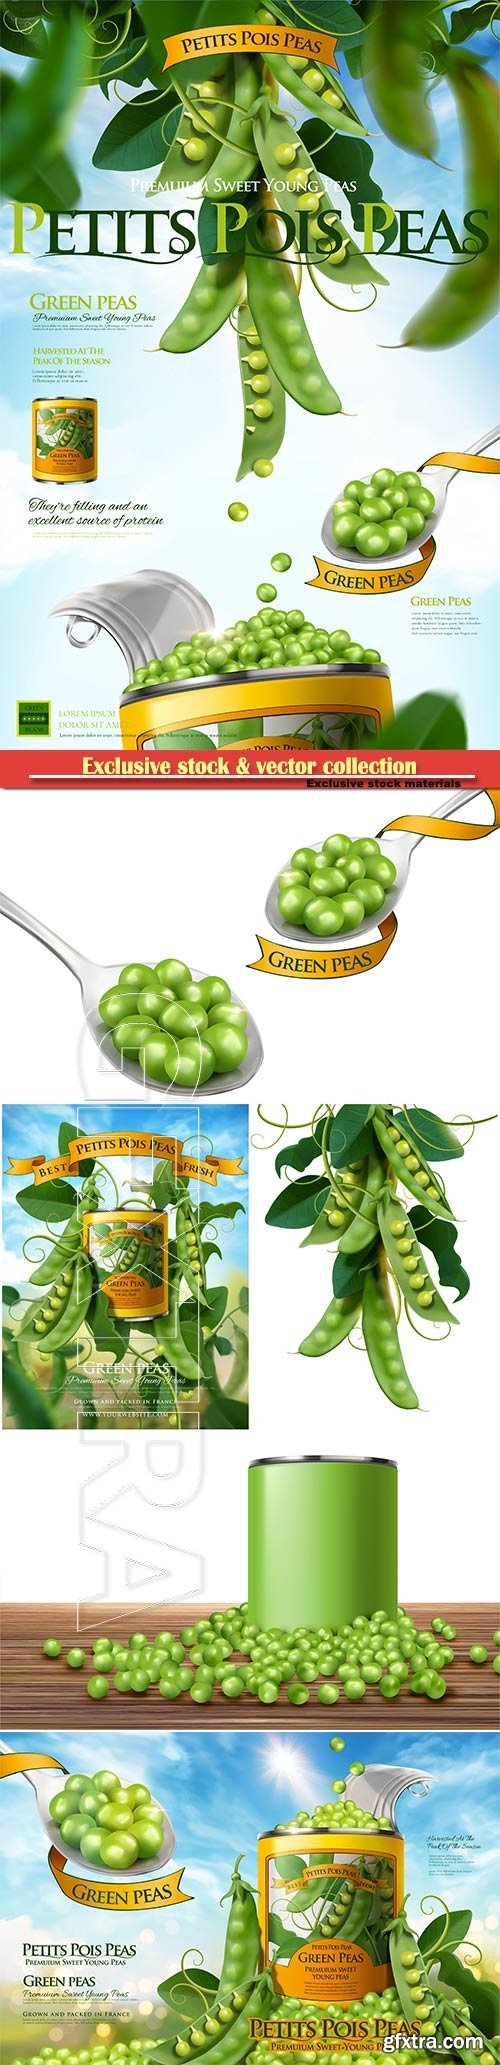 Canned young peas ads poster with fresh plant in 3d vector illustration